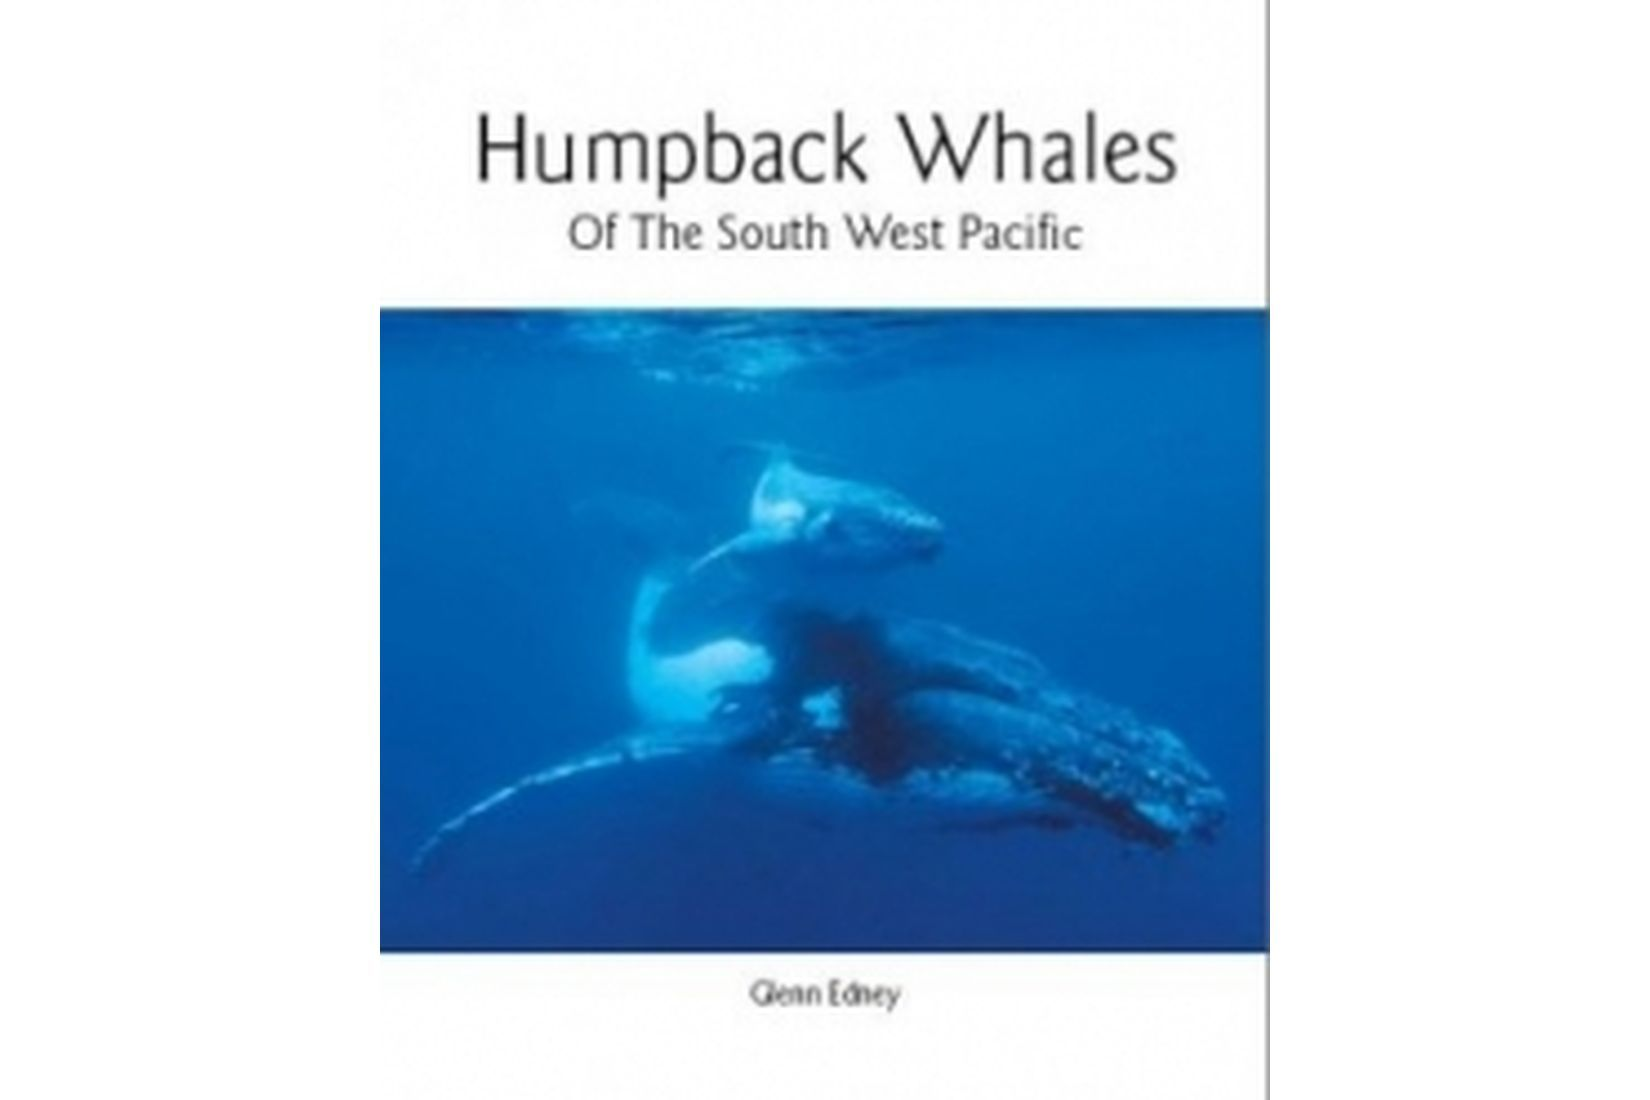 Humpback Whales of the South West Pacific Book